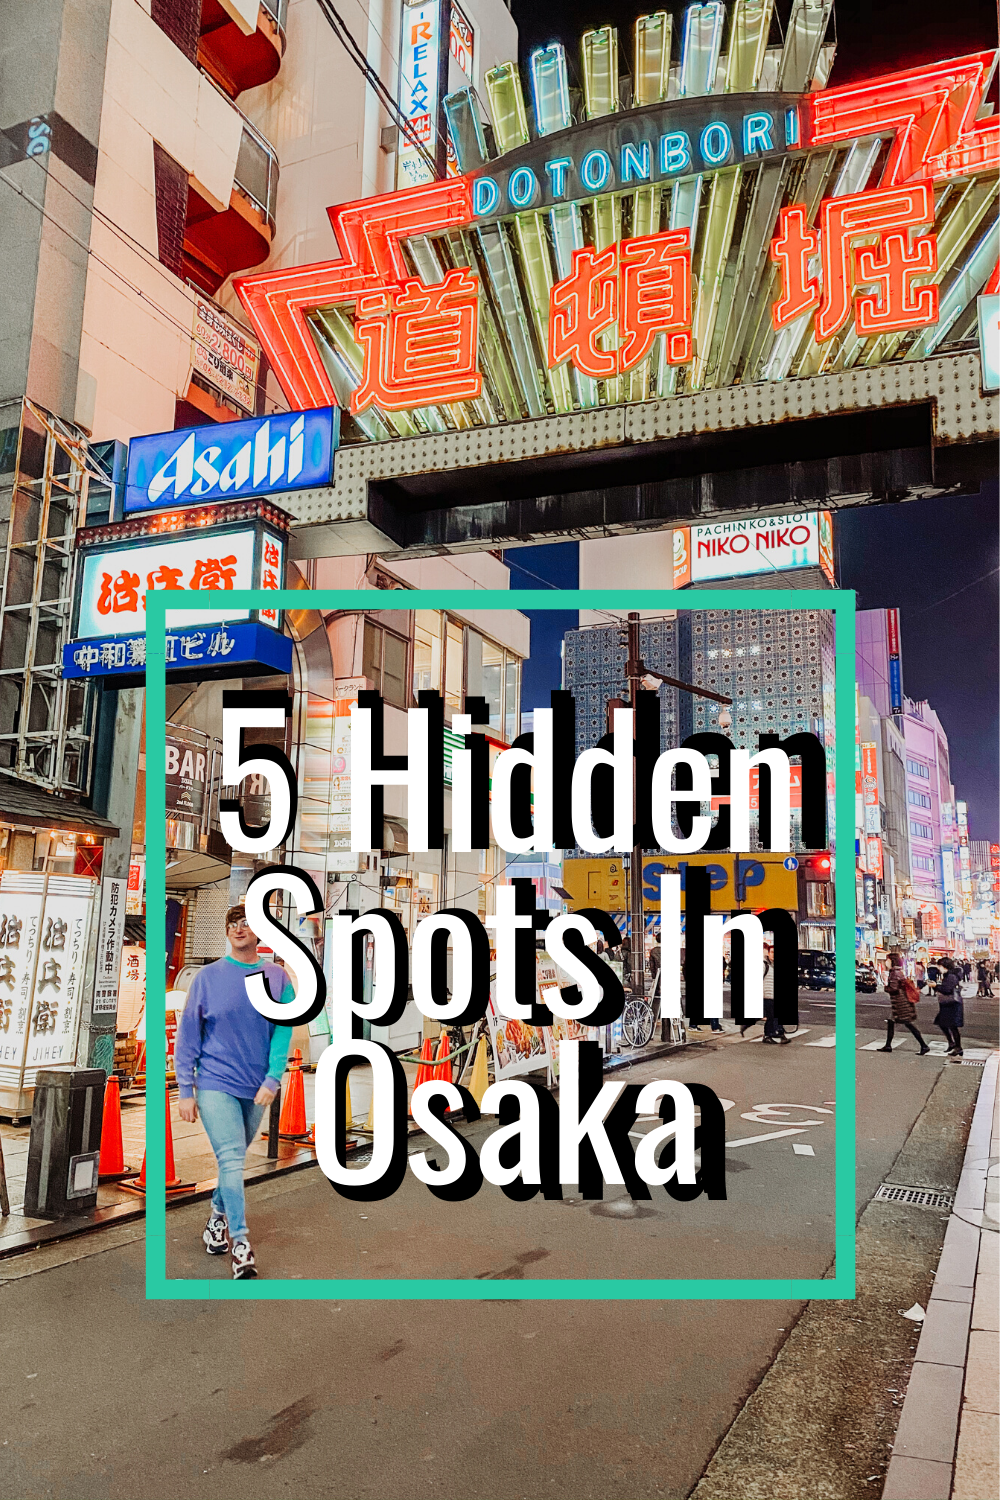 Osaka is the third biggest city in Japan. It's home to an international airport and is only 30 minutes away from Kyoto. Add to this it's spectacular sights and wonderful activities, it's no wonder why more tourists flock to the city year on year. Whilst Osaka Castle, Universal Studios Japan & Dotombori are well worth a visit, sometimes the crowds can be too much to bear and that's why I've compiled this list of my top 5 hidden gems in Osaka #travel #traveljapan #visitjapan #japan